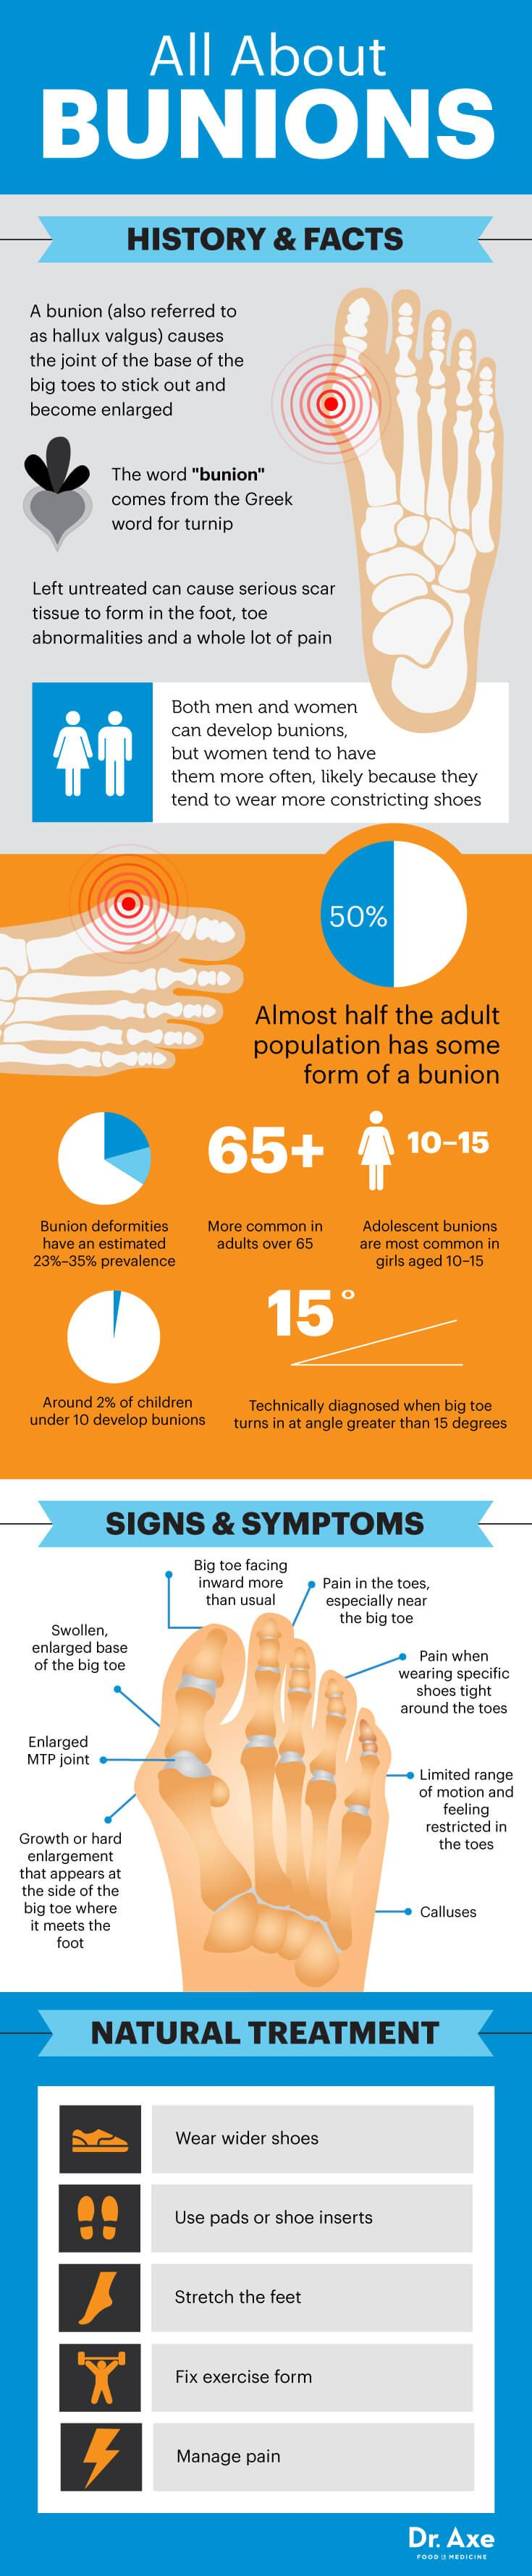 All about bunions - Dr. Axe